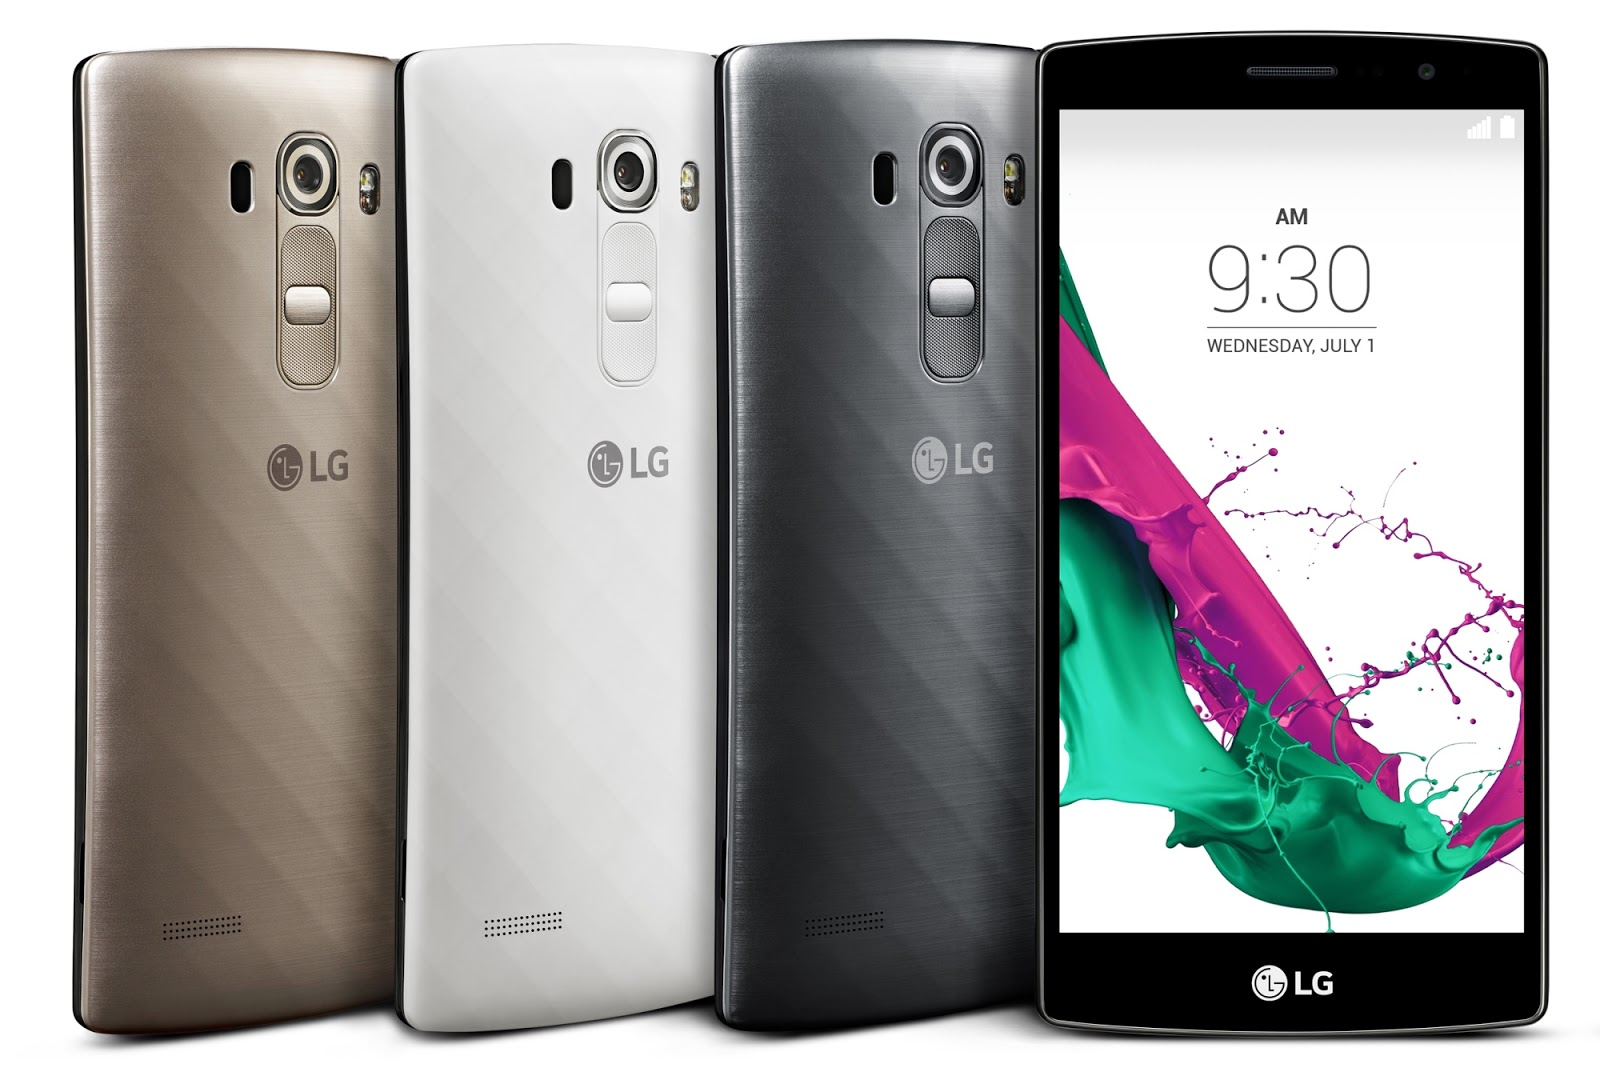 LG G4 Beat LTE in Shiny Gold, Ceramic White, and Metallic Silver